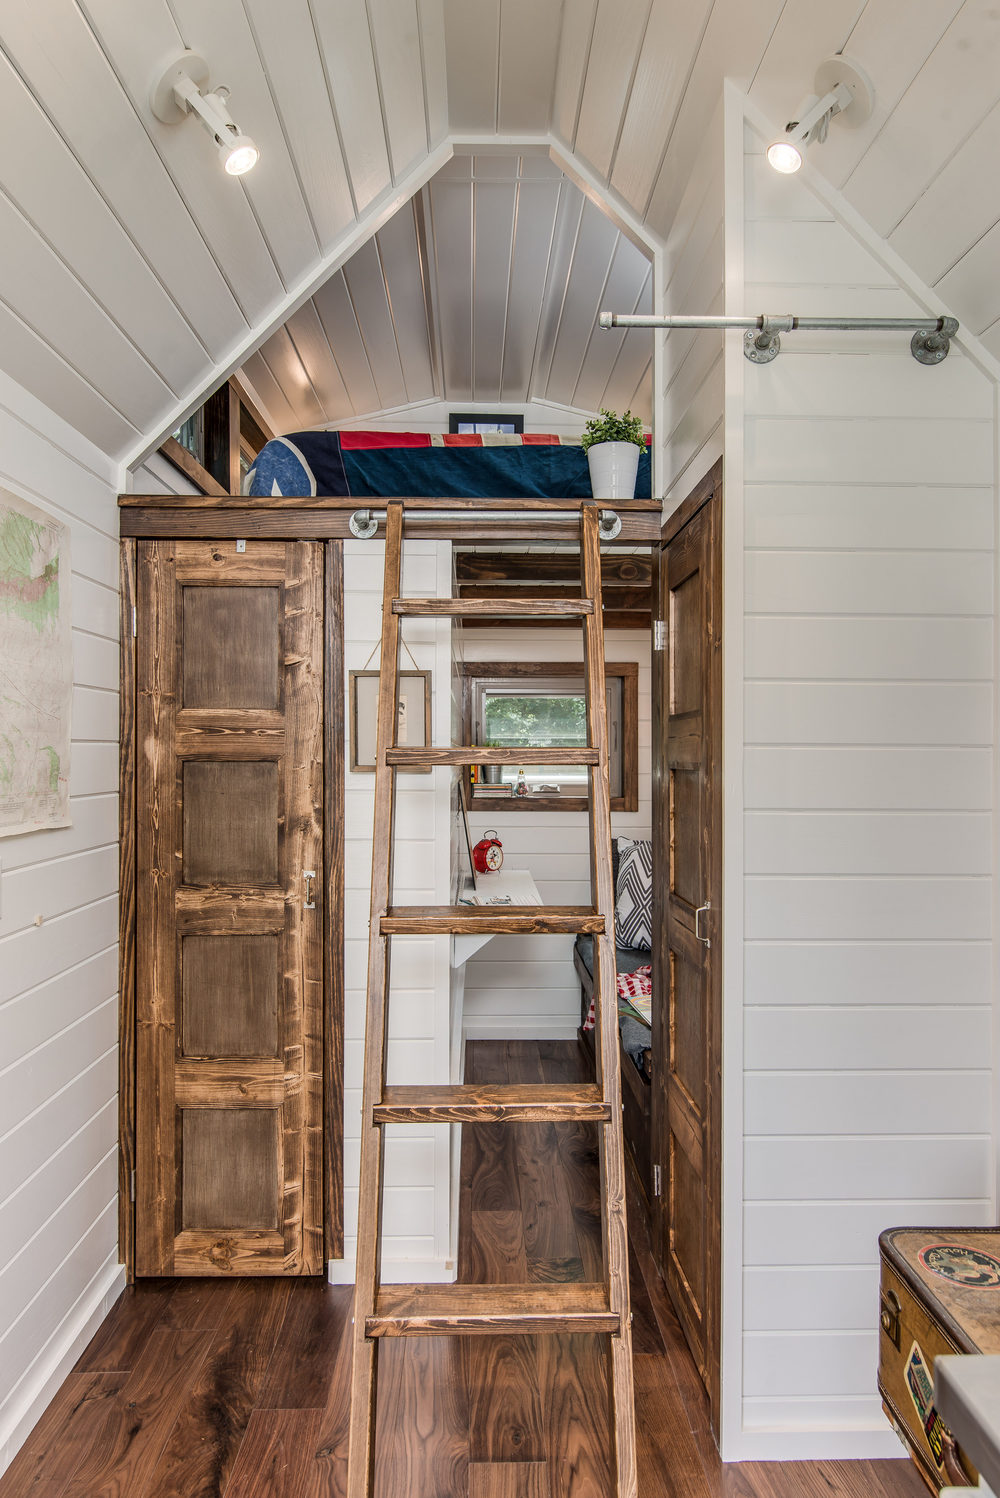 cedar-mountain-new-frontier-tiny-homes-13